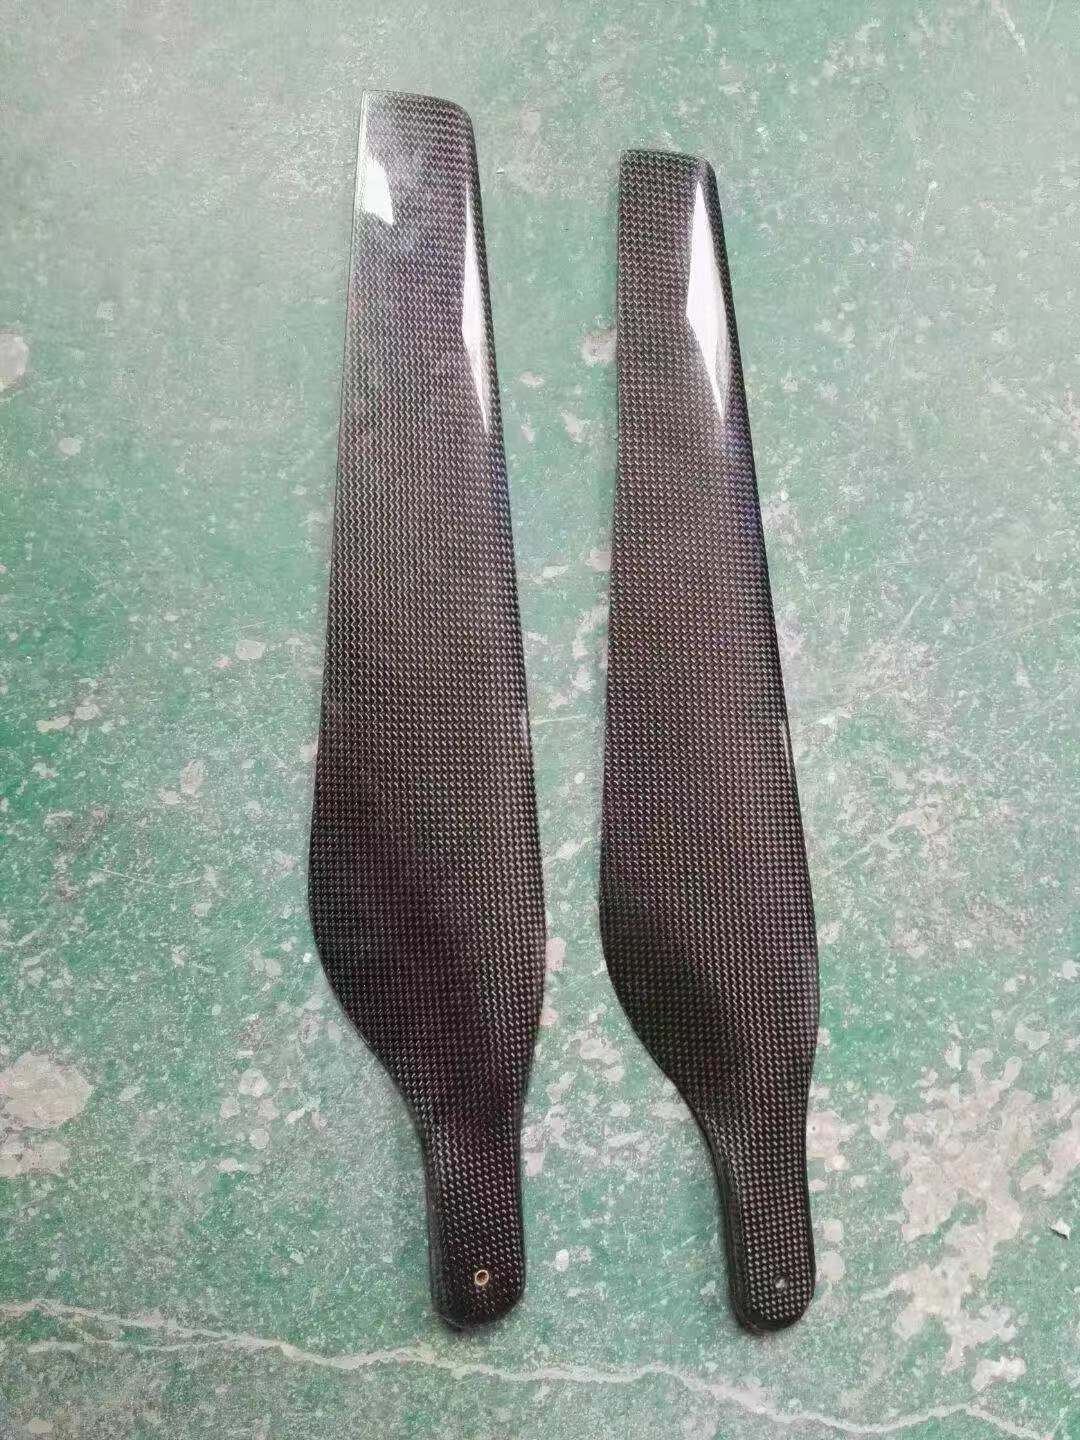 33x12 full size fold able carbon fiber prop CW CCW pair